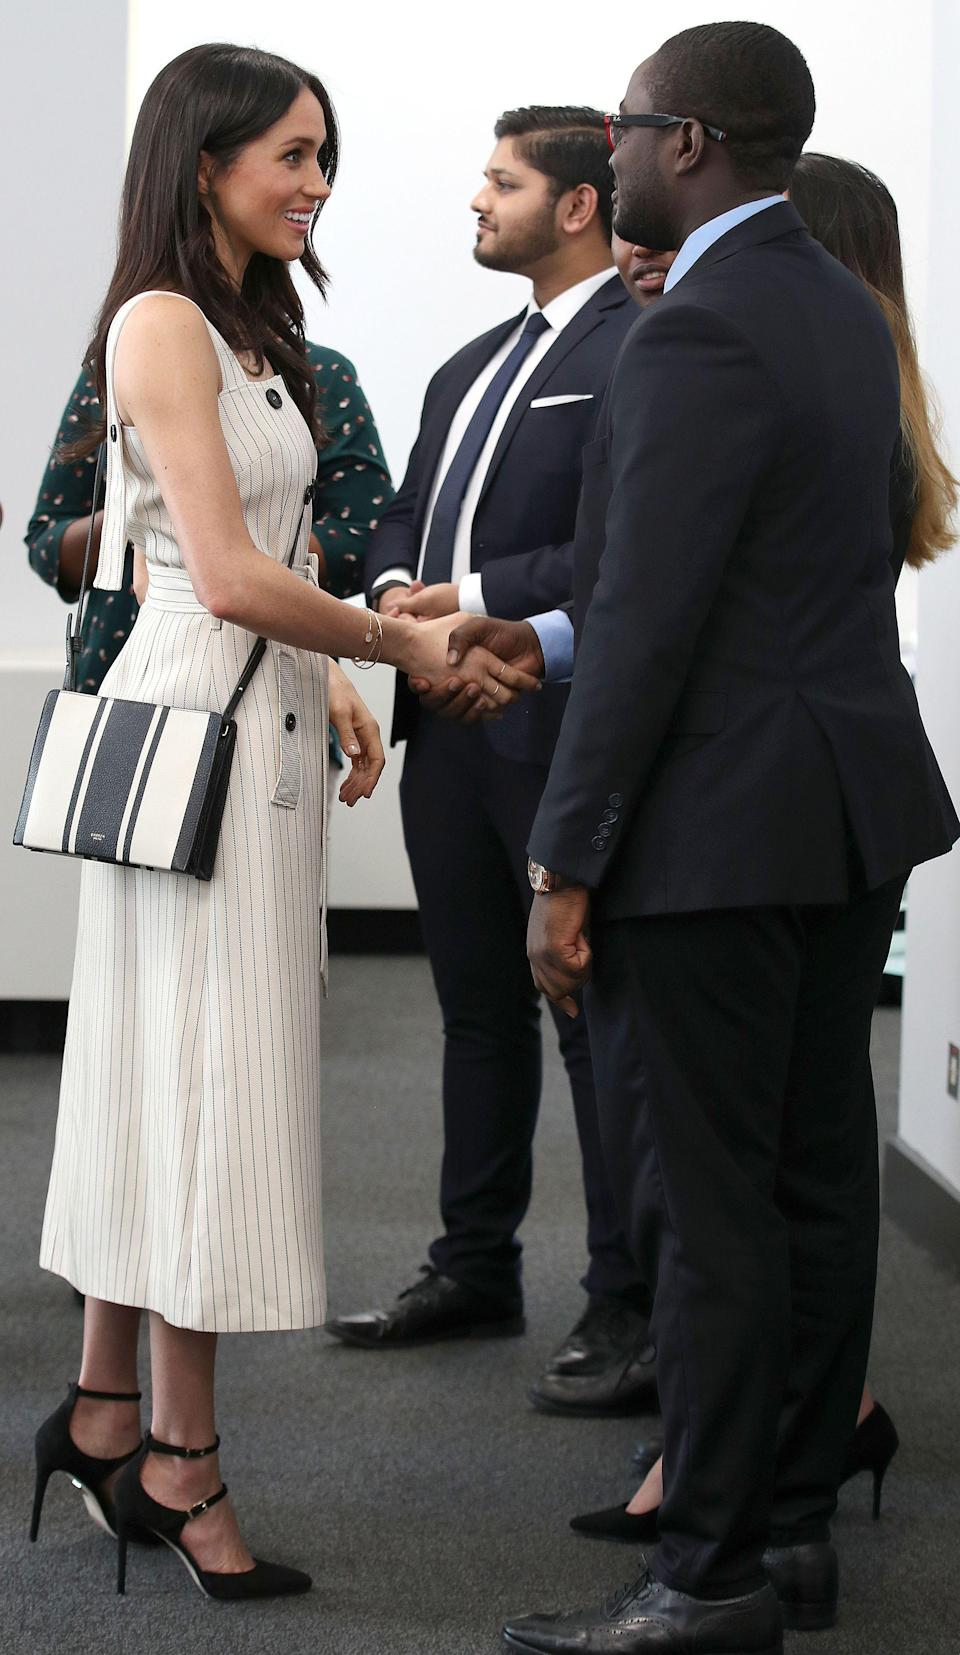 <p>Meghan Markle broke tradition by removing her jacket inside the event. </p>